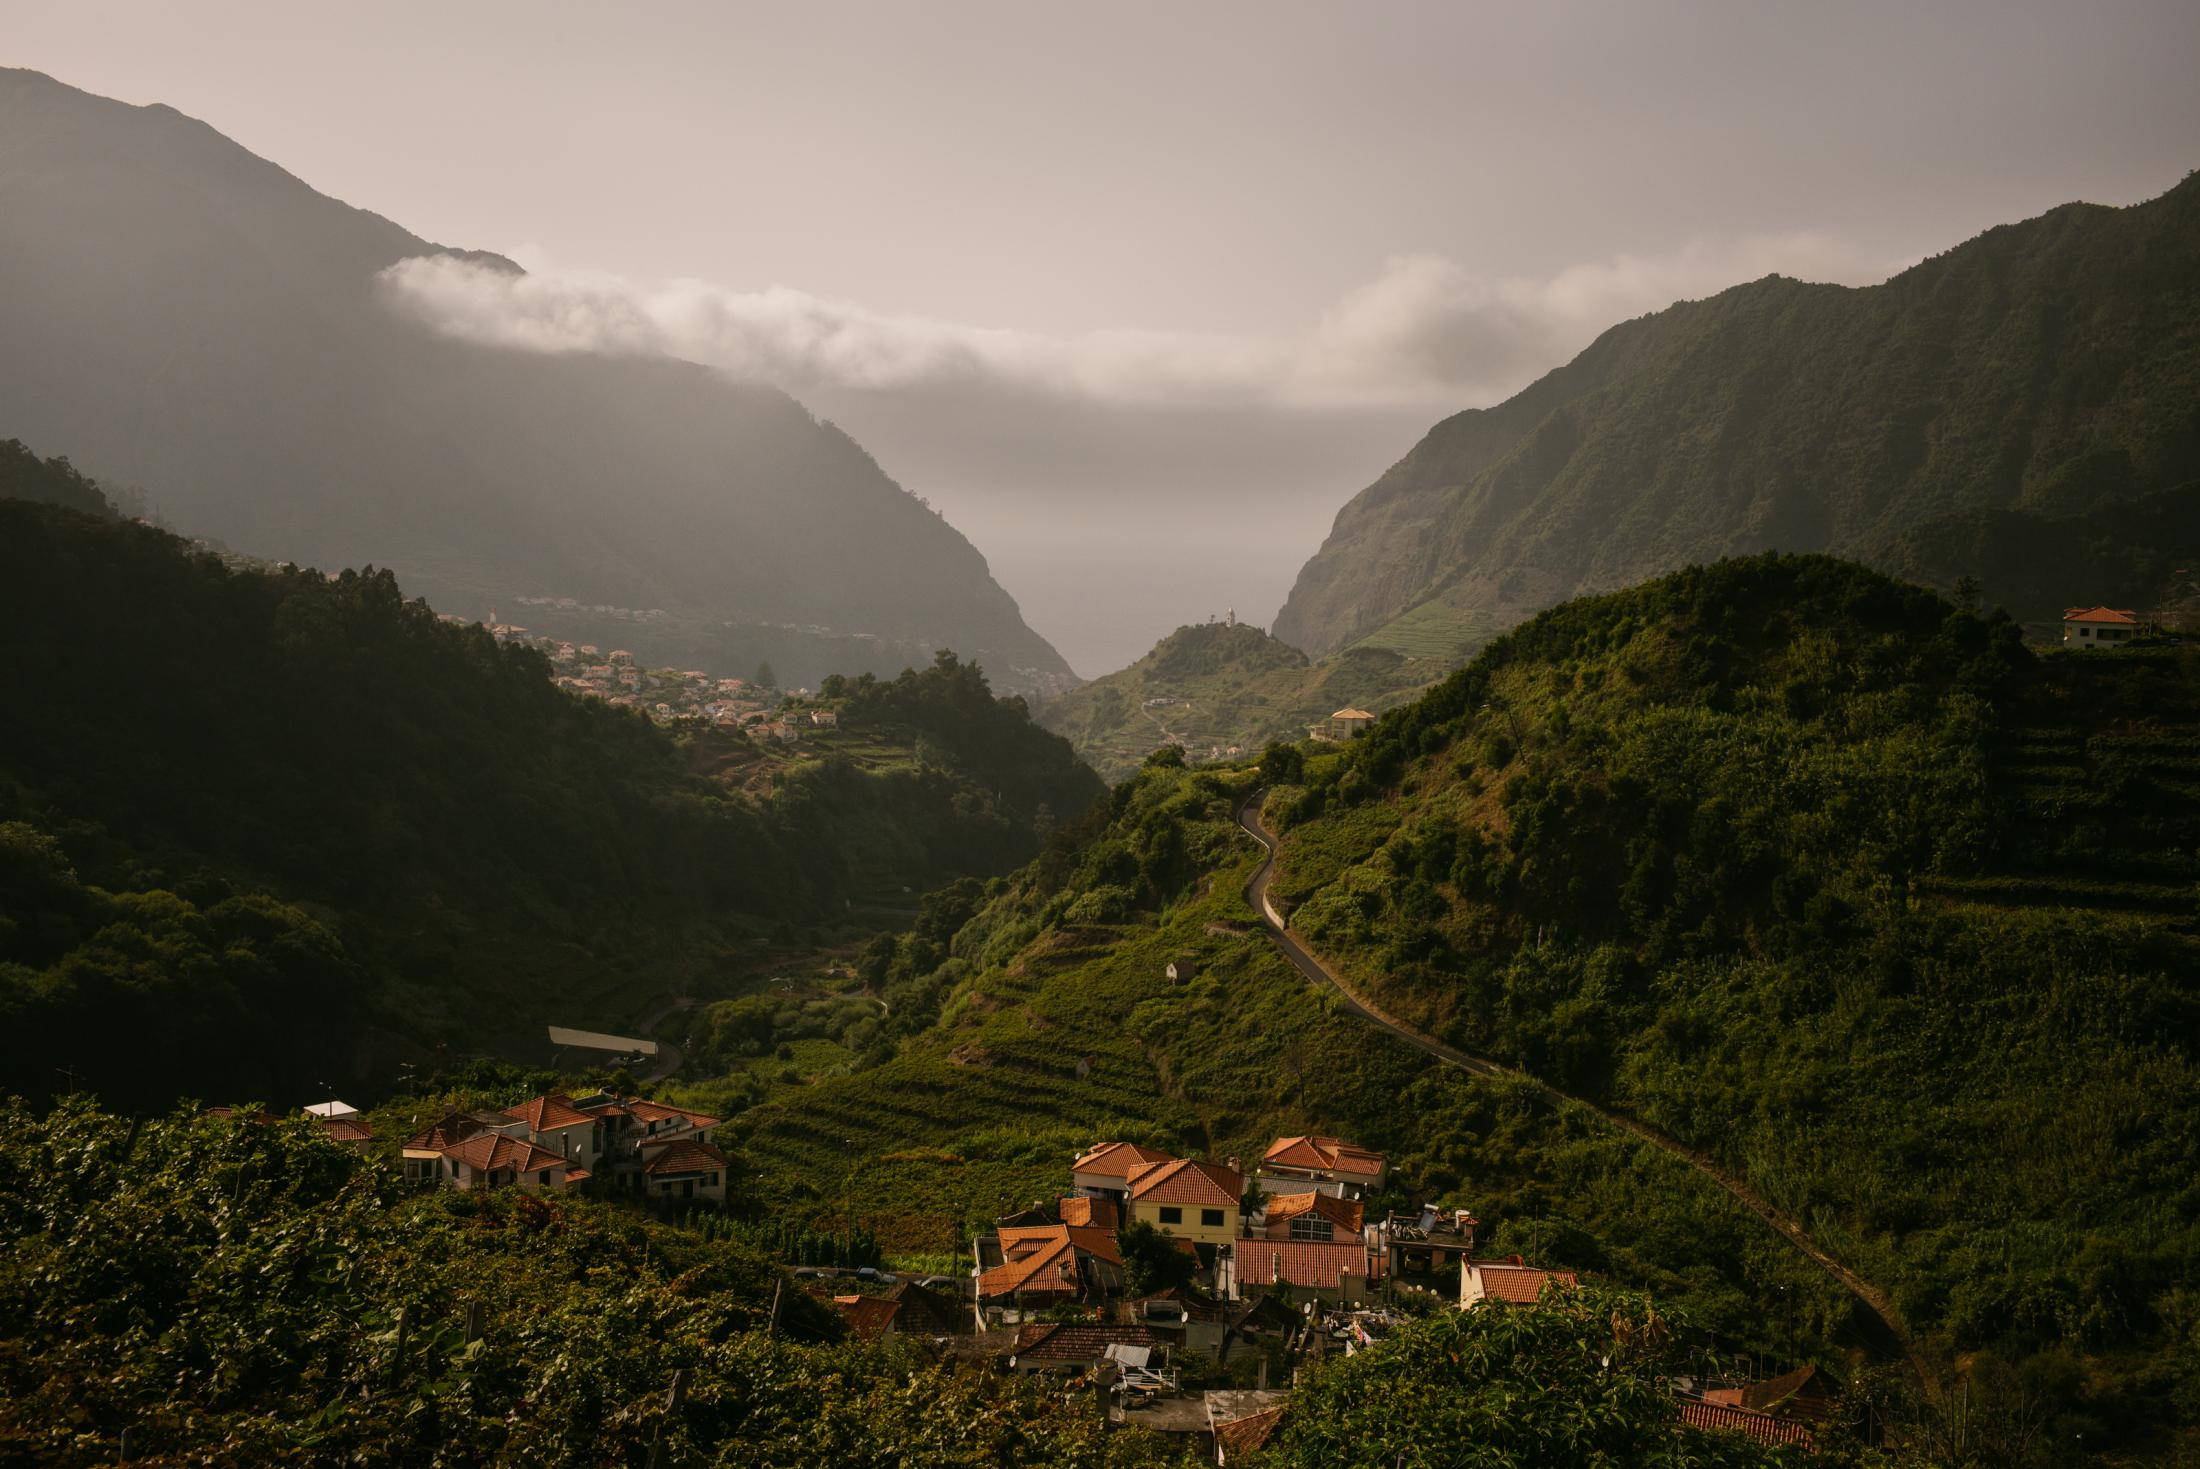 A view of the village of São Vicente in northern Madeira. Madeira, Portugal. 12th August 2017. For a long time, Portugal, which includes the island, was considered an emigration country. Especially during the dictatorship between 1926 and 1974, many residents left the country - often in the direction of Venezuela. Because of the oil boom, it was one of the richest countries in South America at the time. Today about 500,000 people of Portuguese descent live there, most of them from Madeira. Especially the rural regions of the island were almost deserted for a long time due to the emigration. It's different today: Between 2017 and 2019, between 5,000 and 10,000 Portuguese returned to their home country due to the Venezuelan crisis. Anyone who could buy a house near the main town of Funchal in better times will return there. For others, parents or relatives are the first point of contact.